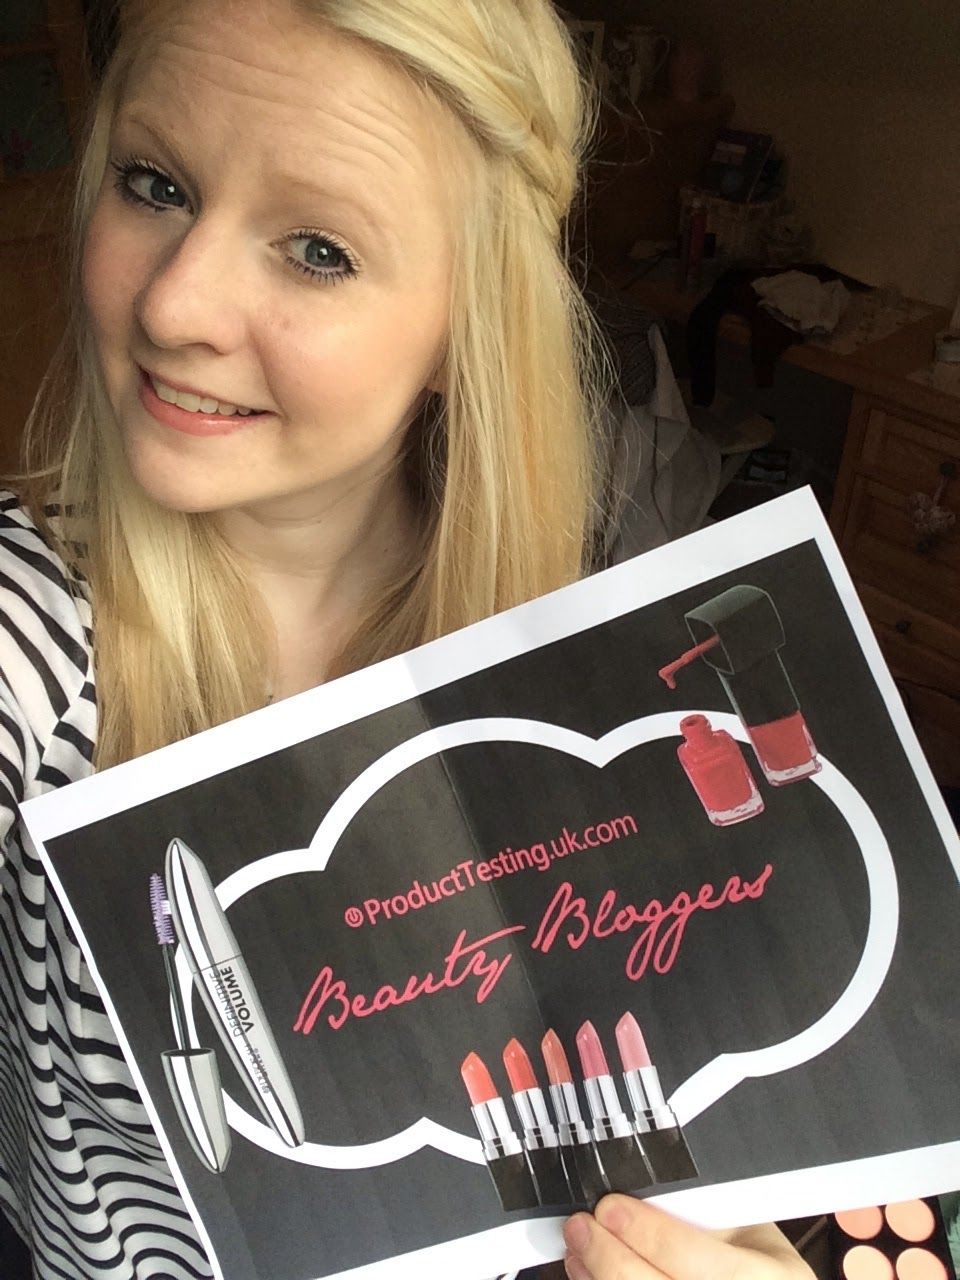 Jessica reviewed Revolution's Eyeshadow Palette! Click